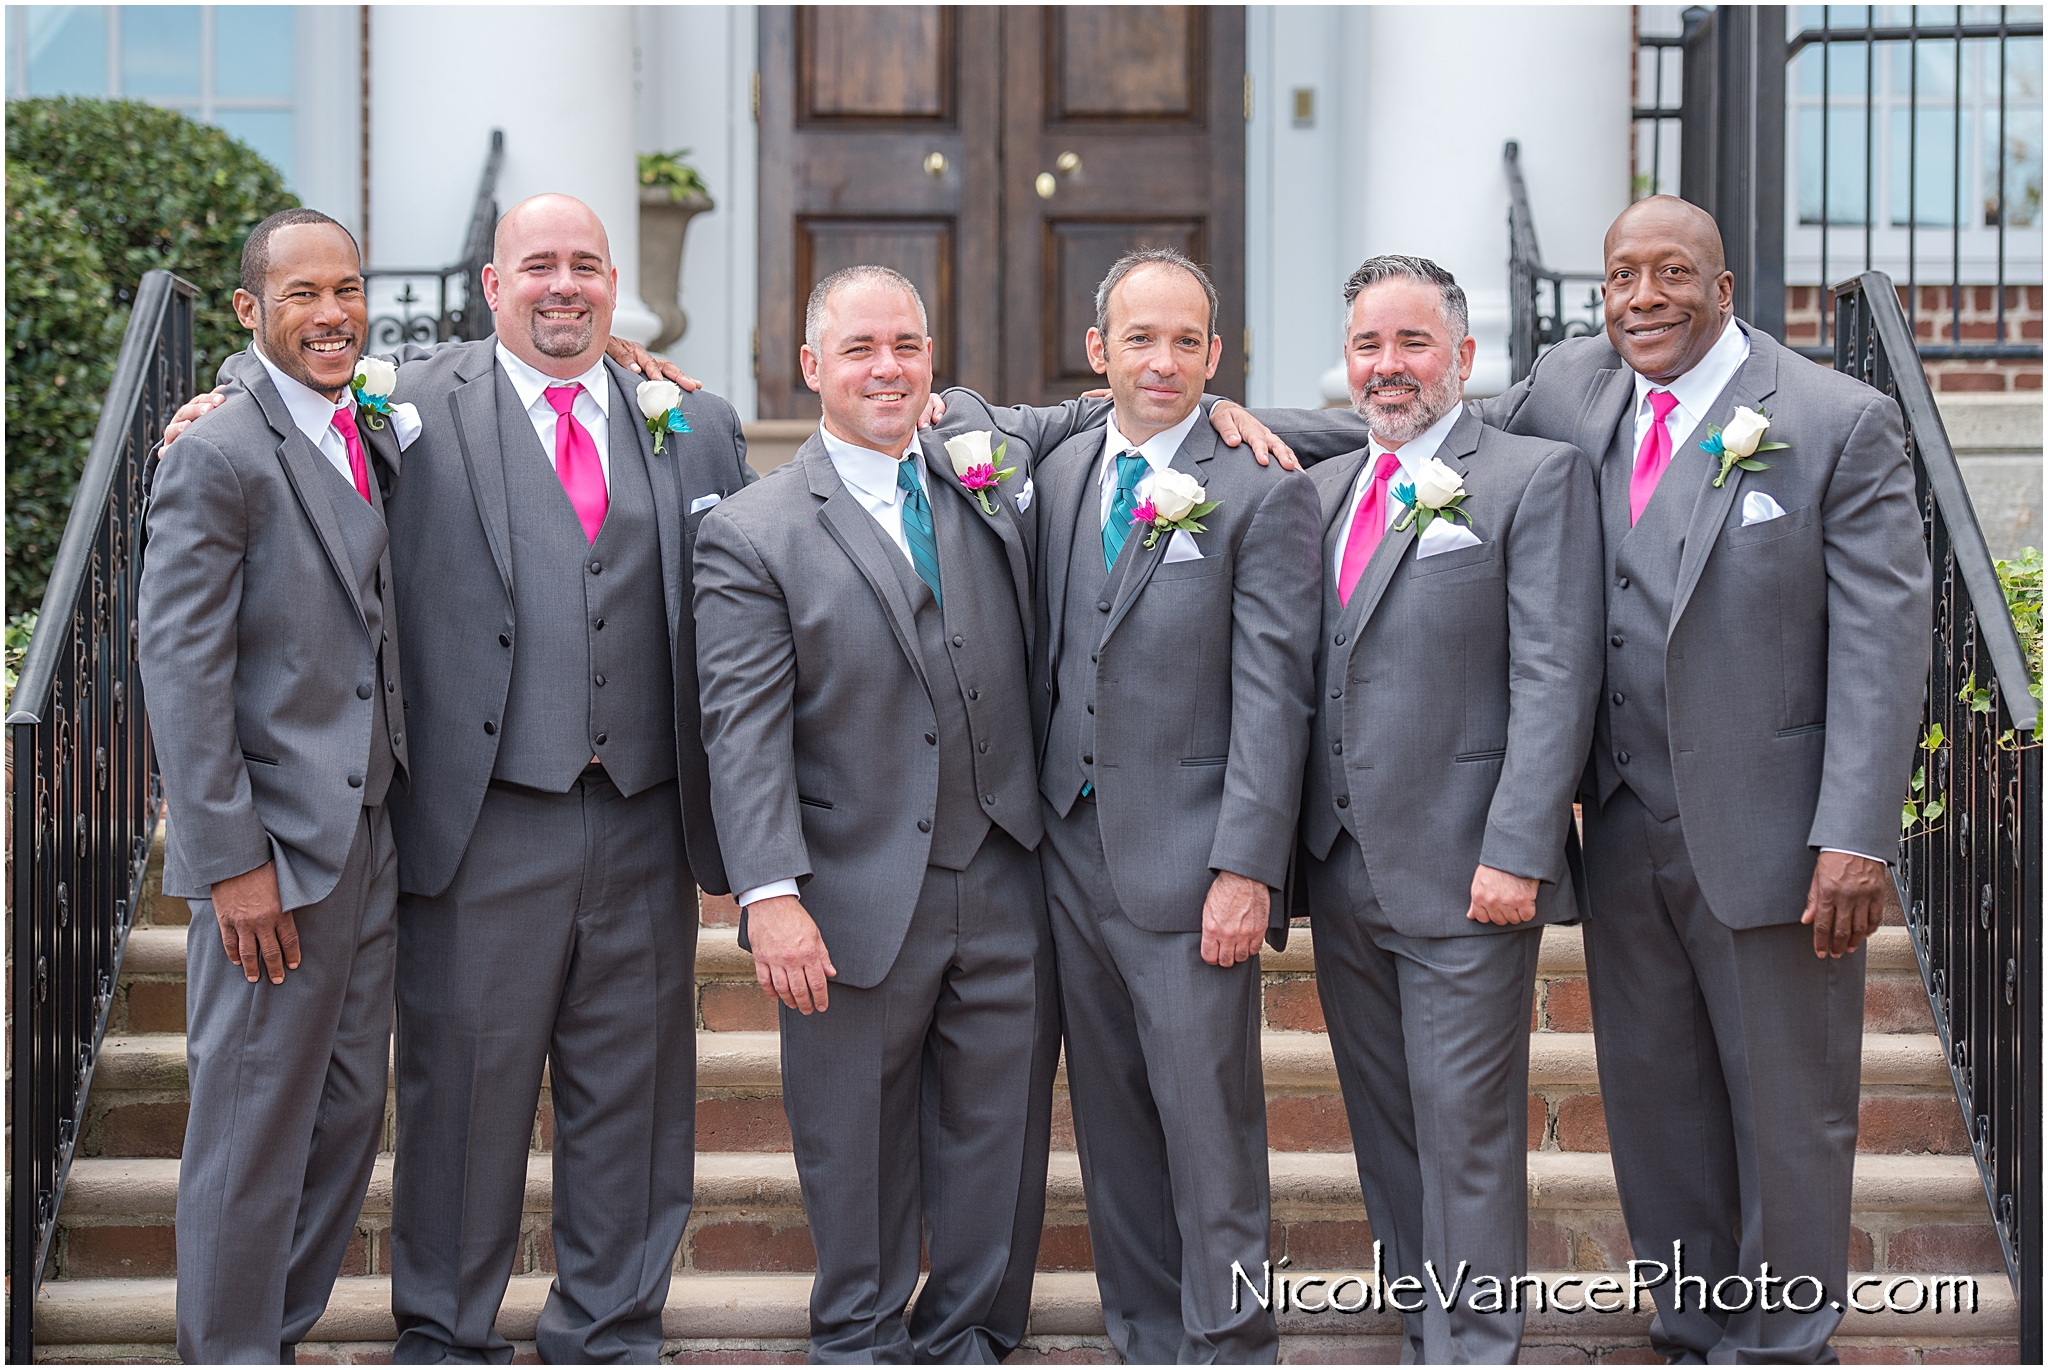 Groomsmen portrait on the steps at Virginia Crossings.